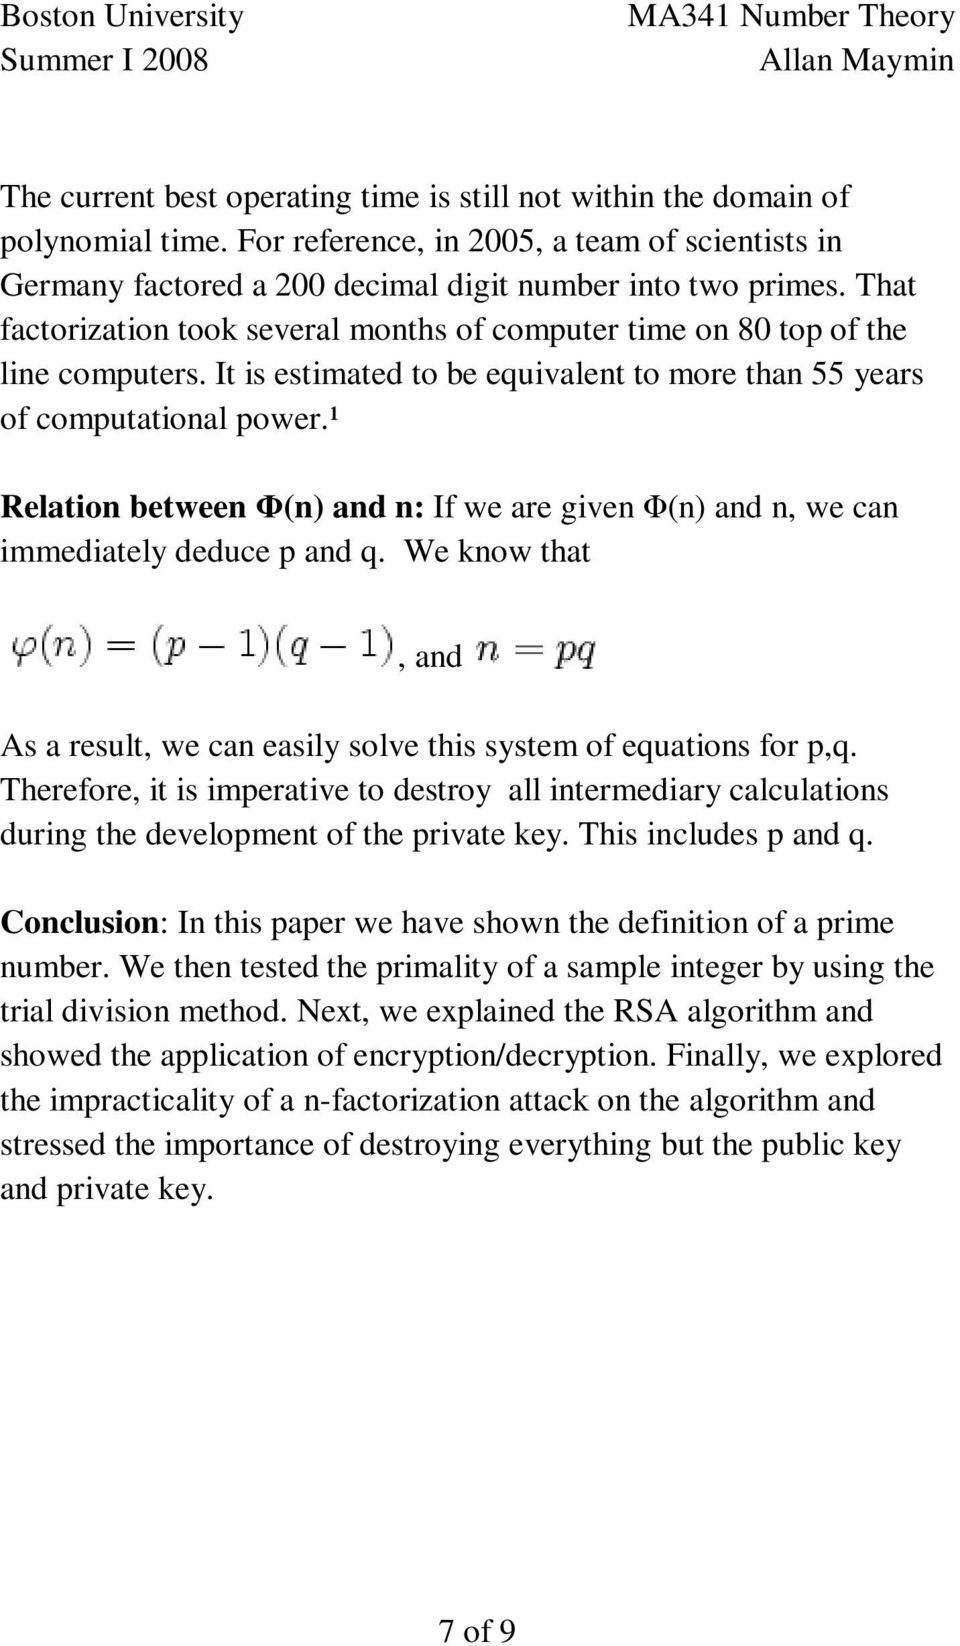 are given Φ(n) and n, we can immediately deduce p and q We know that, and As a result, we can easily solve this system of equations for p,q Therefore, it is imperative to destroy all intermediary